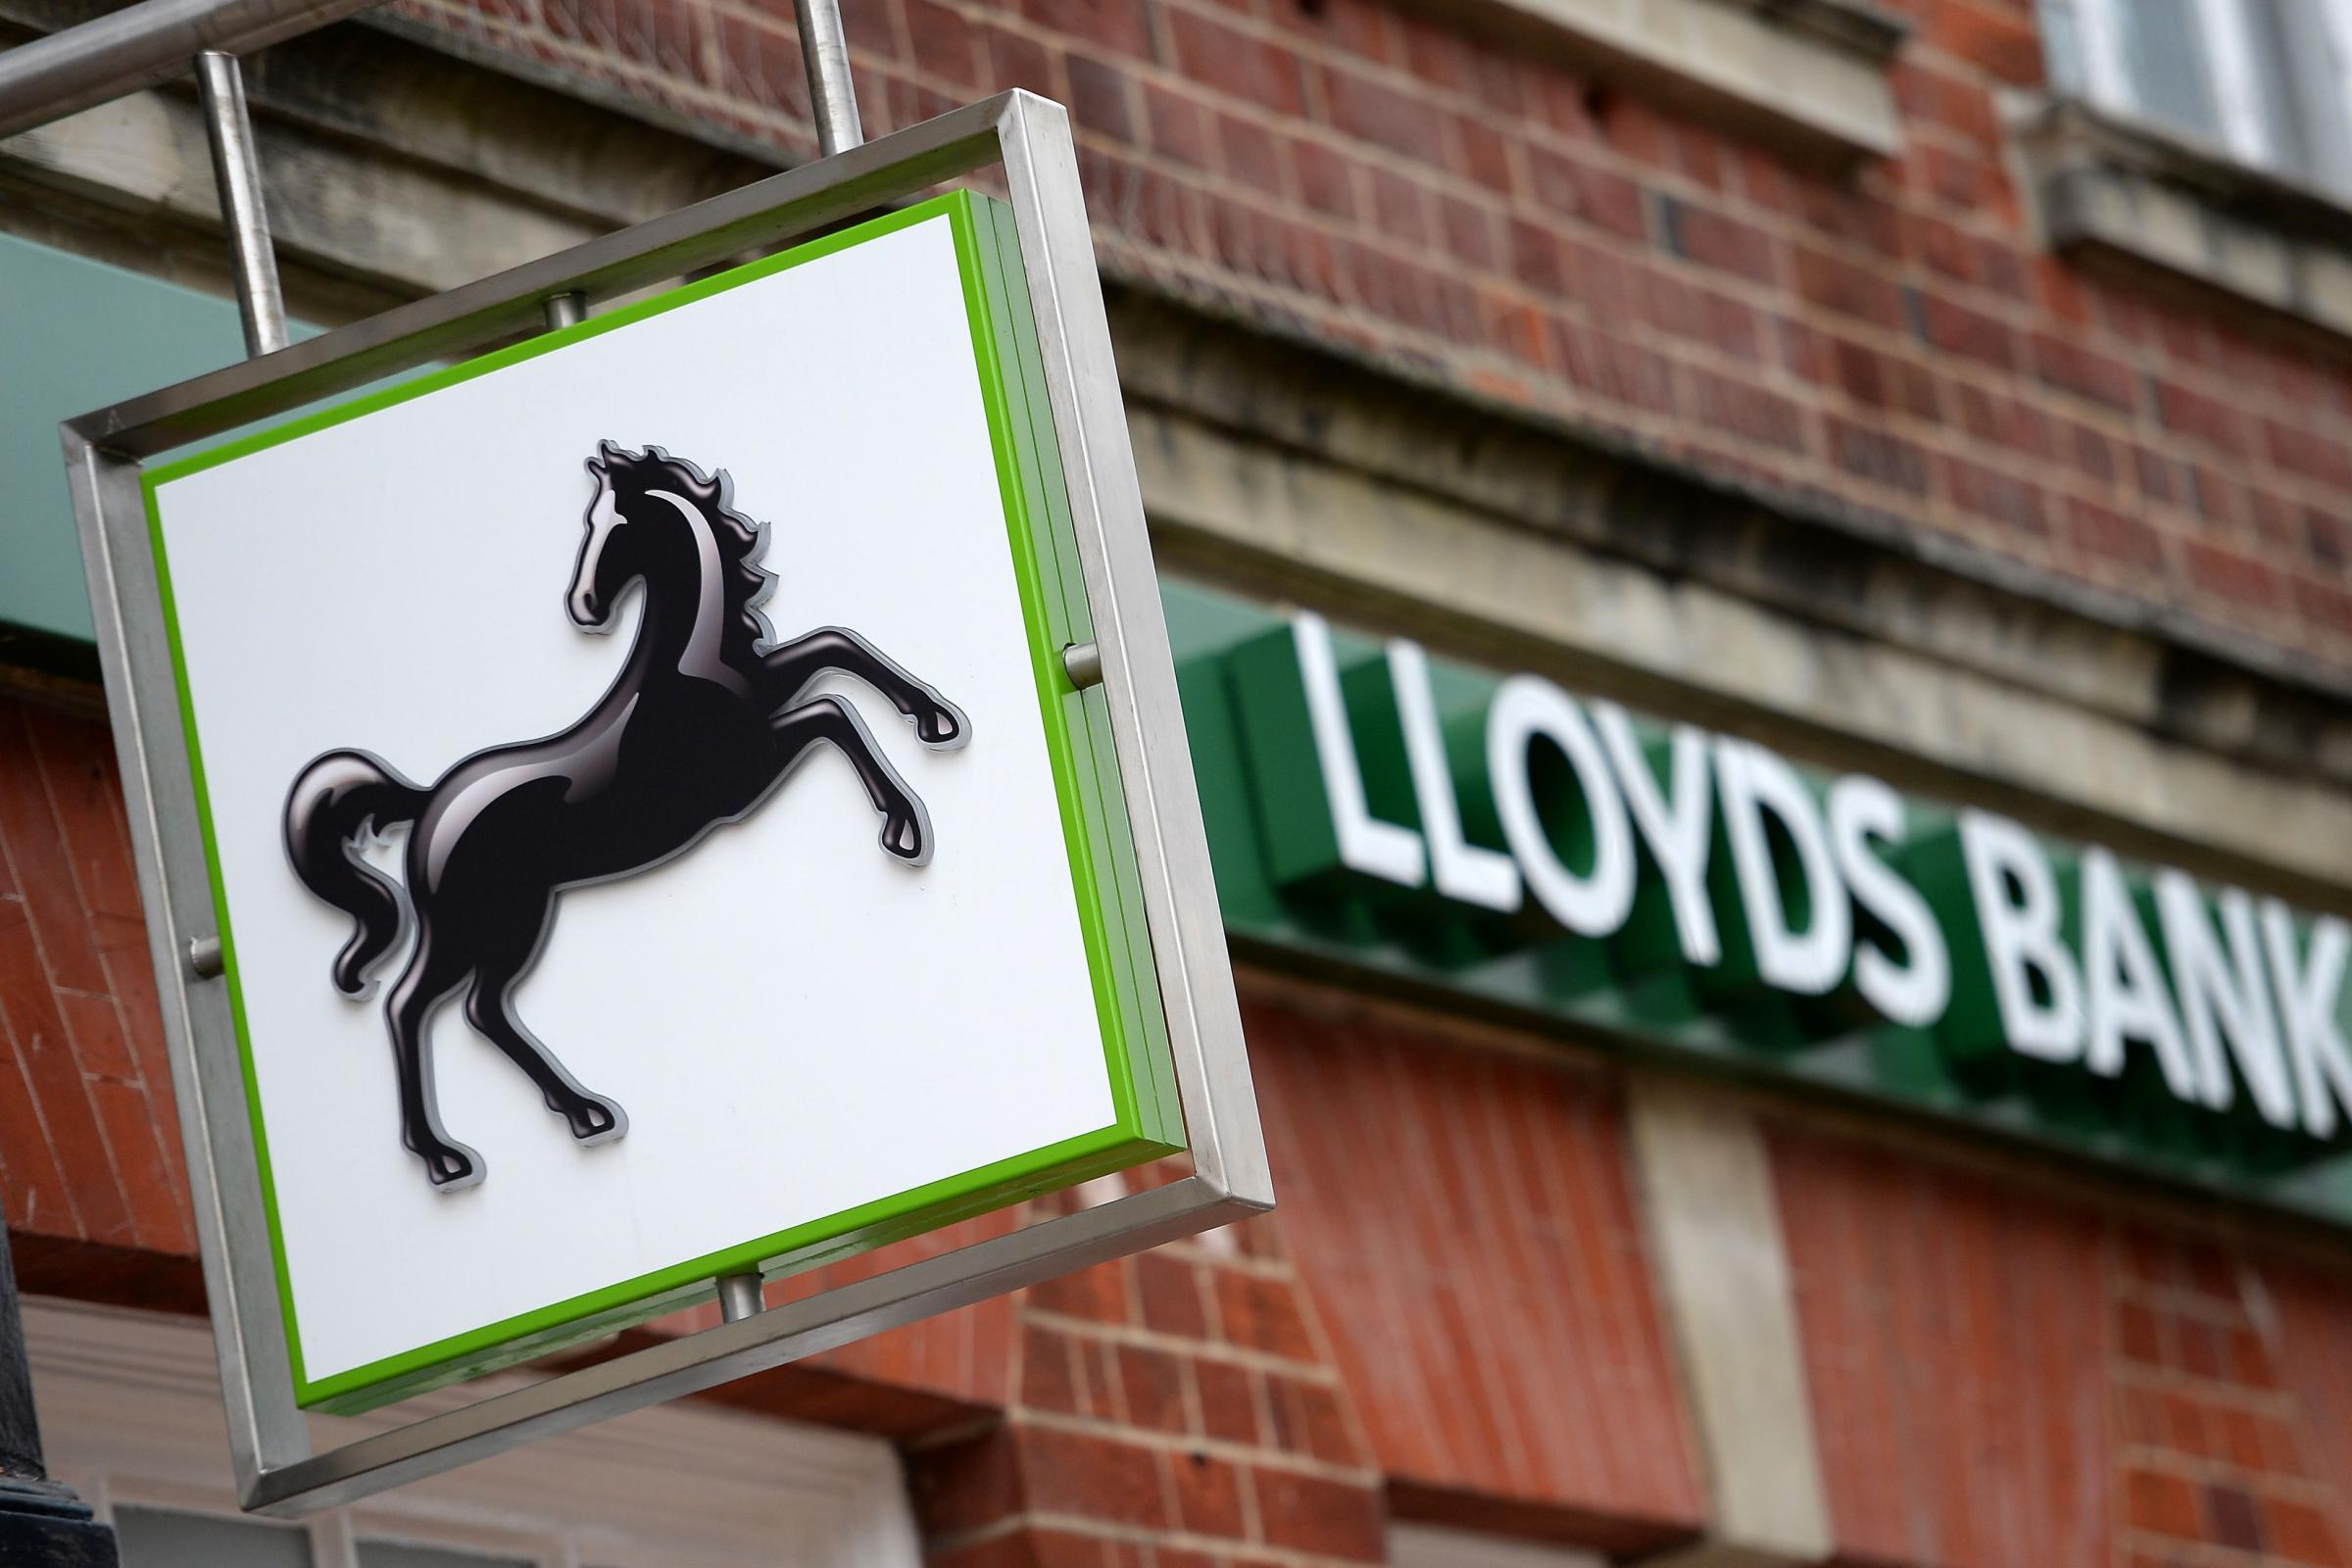 Lloyds to set ethnic diversity target for senior management positions